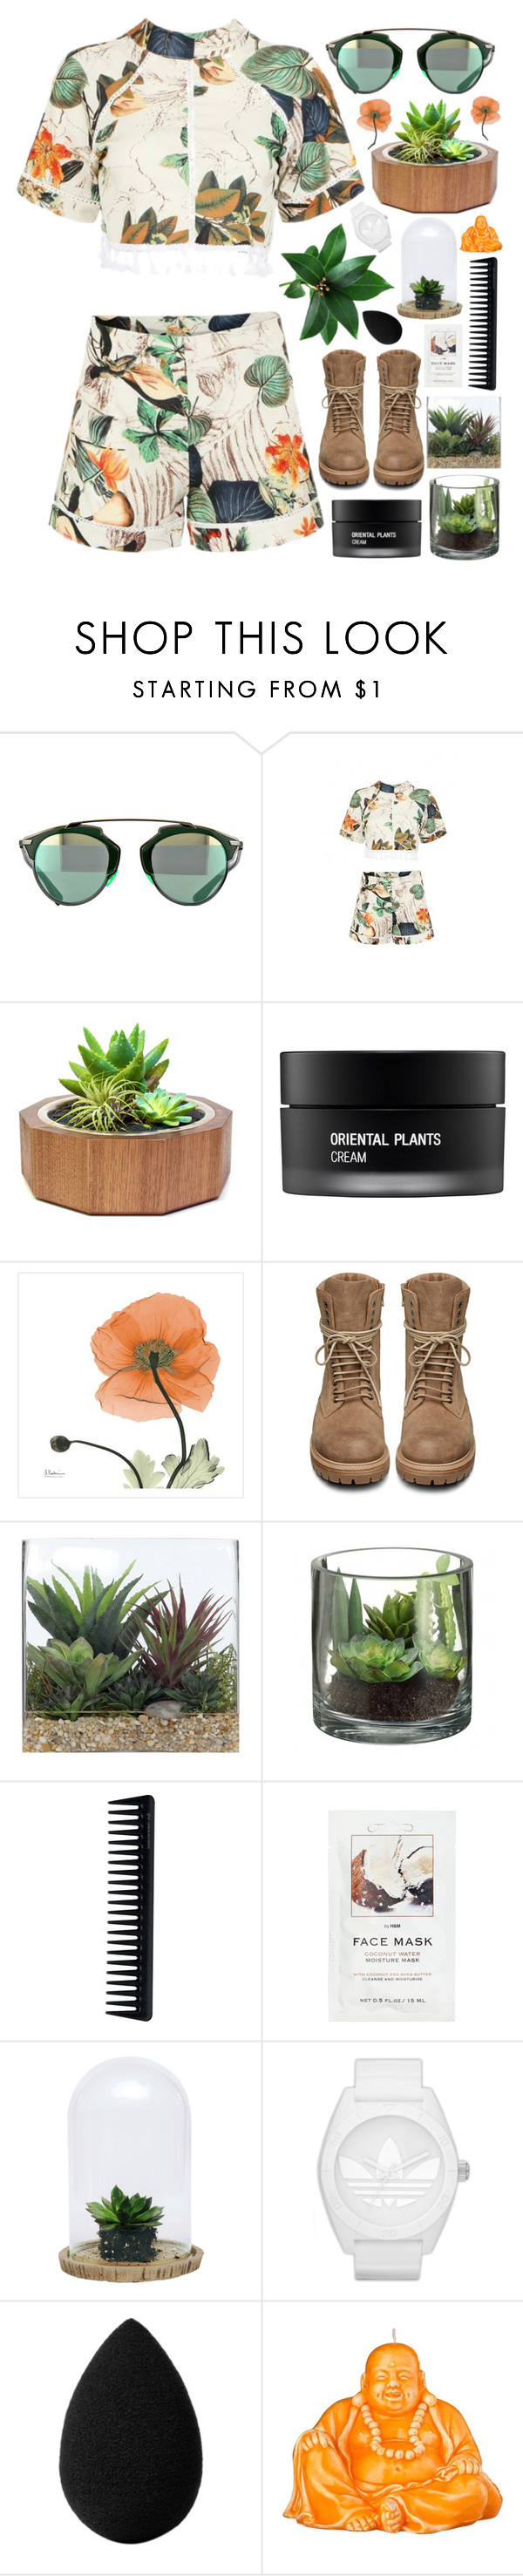 """No Body"" by akp123 ❤ liked on Polyvore featuring Dot & Bo, Koh Gen Do, Rick Owens, Lux-Art Silks, GHD, H&M, adidas Originals, beautyblender and Mario Luca Giusti"